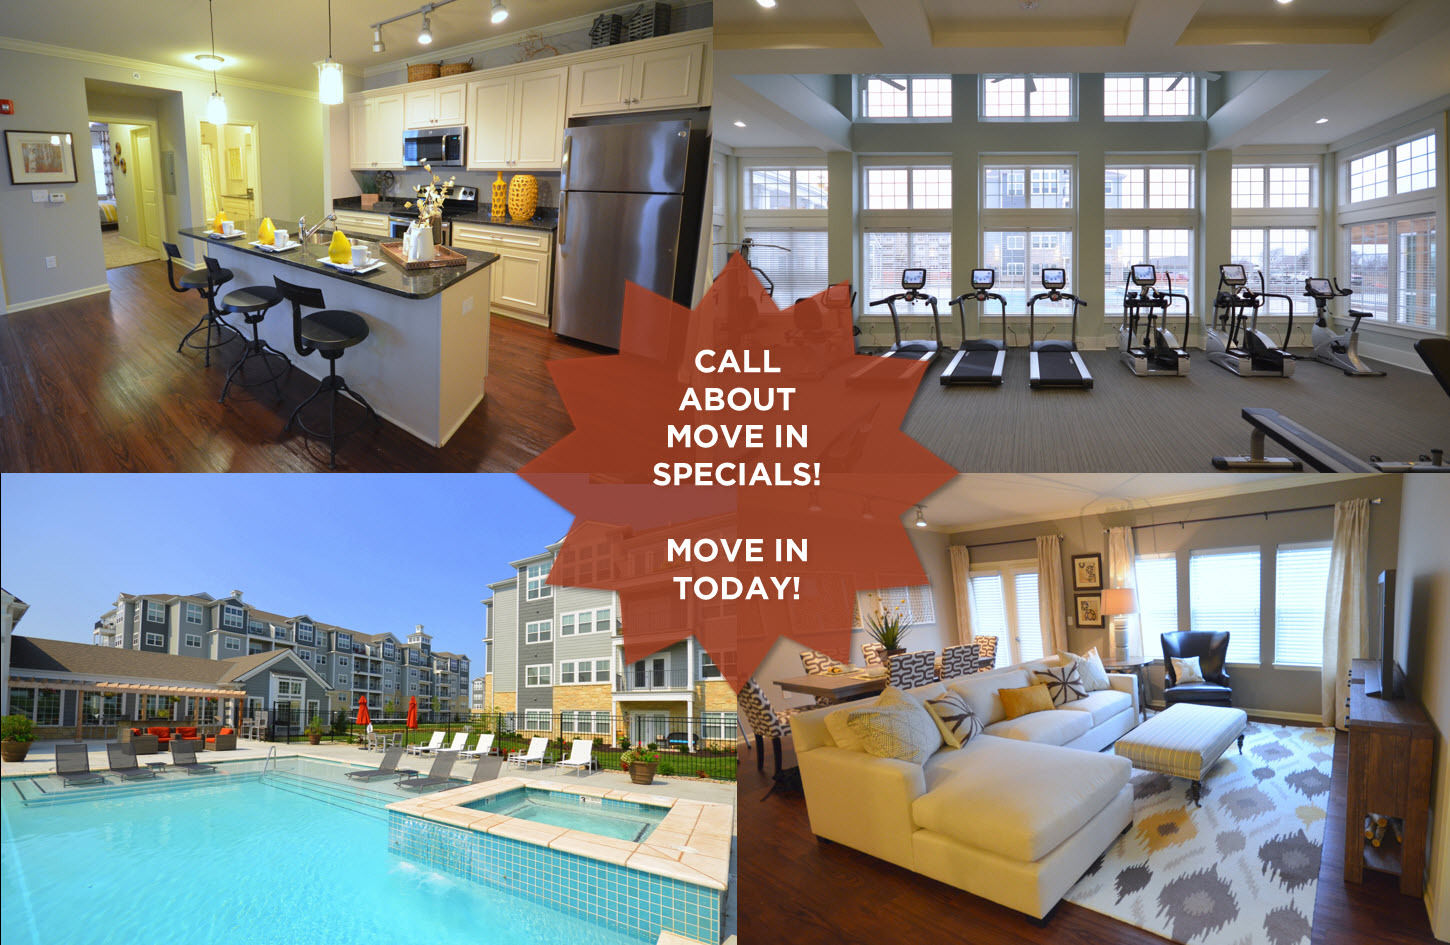 20 Best Apartments For Rent In Kansas City KS From 560